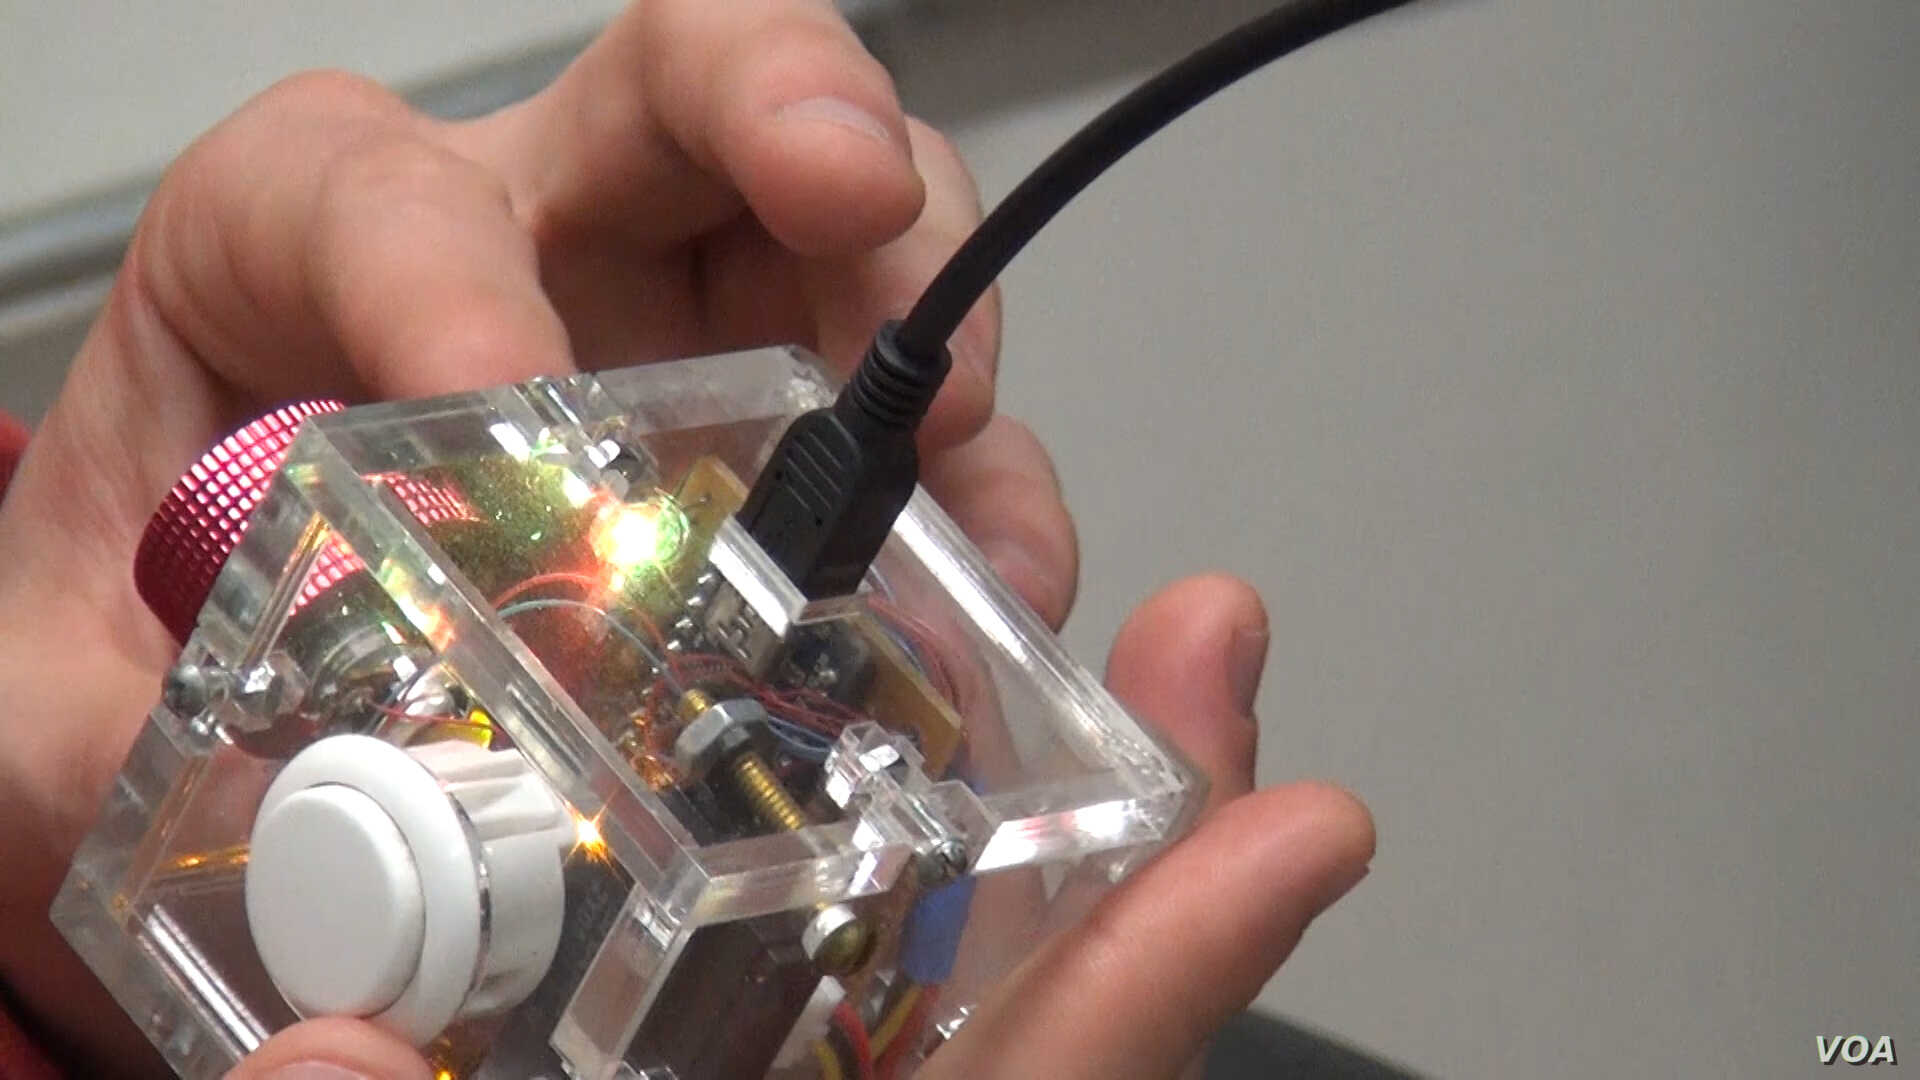 Hackers can create intricate electronic devices with the tools at a hacker space.